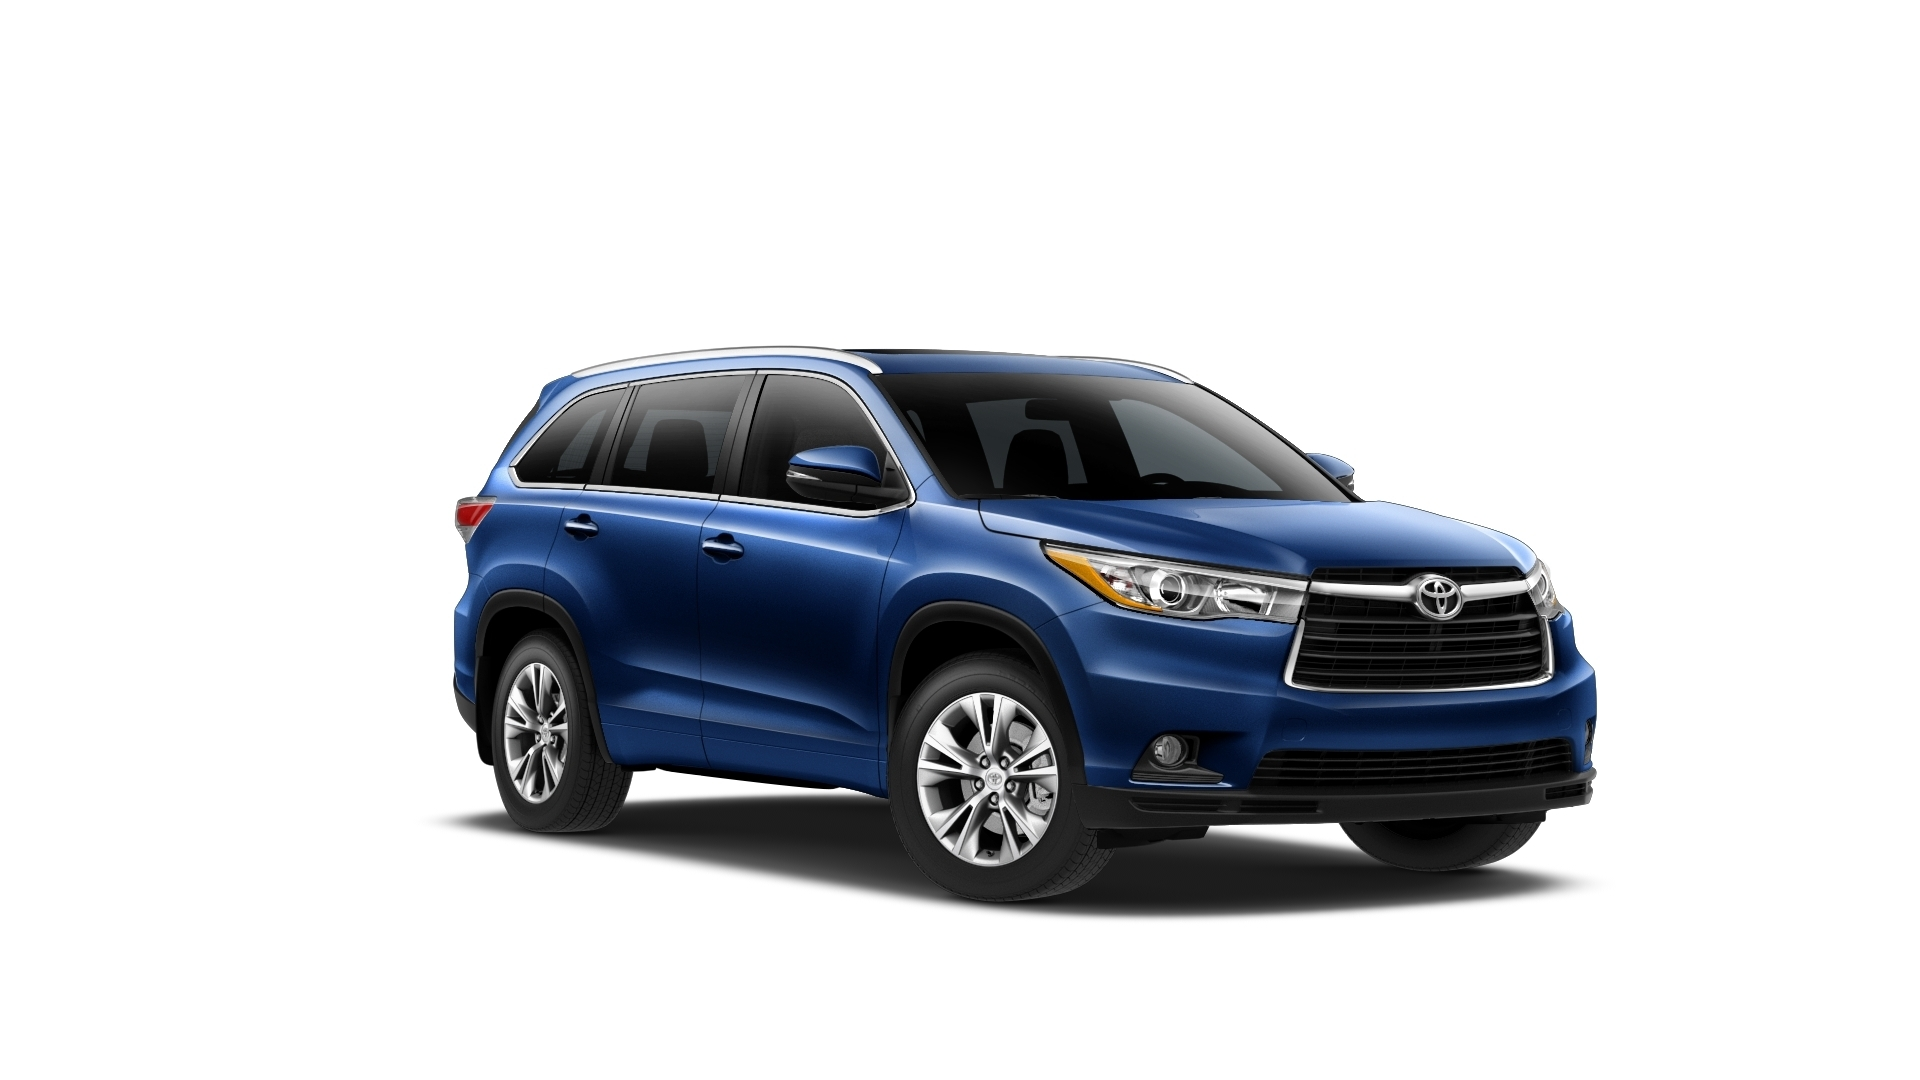 2015 highlander invoice 2015 toyota highlander invoice price invoice template ideas 1920 X 1080